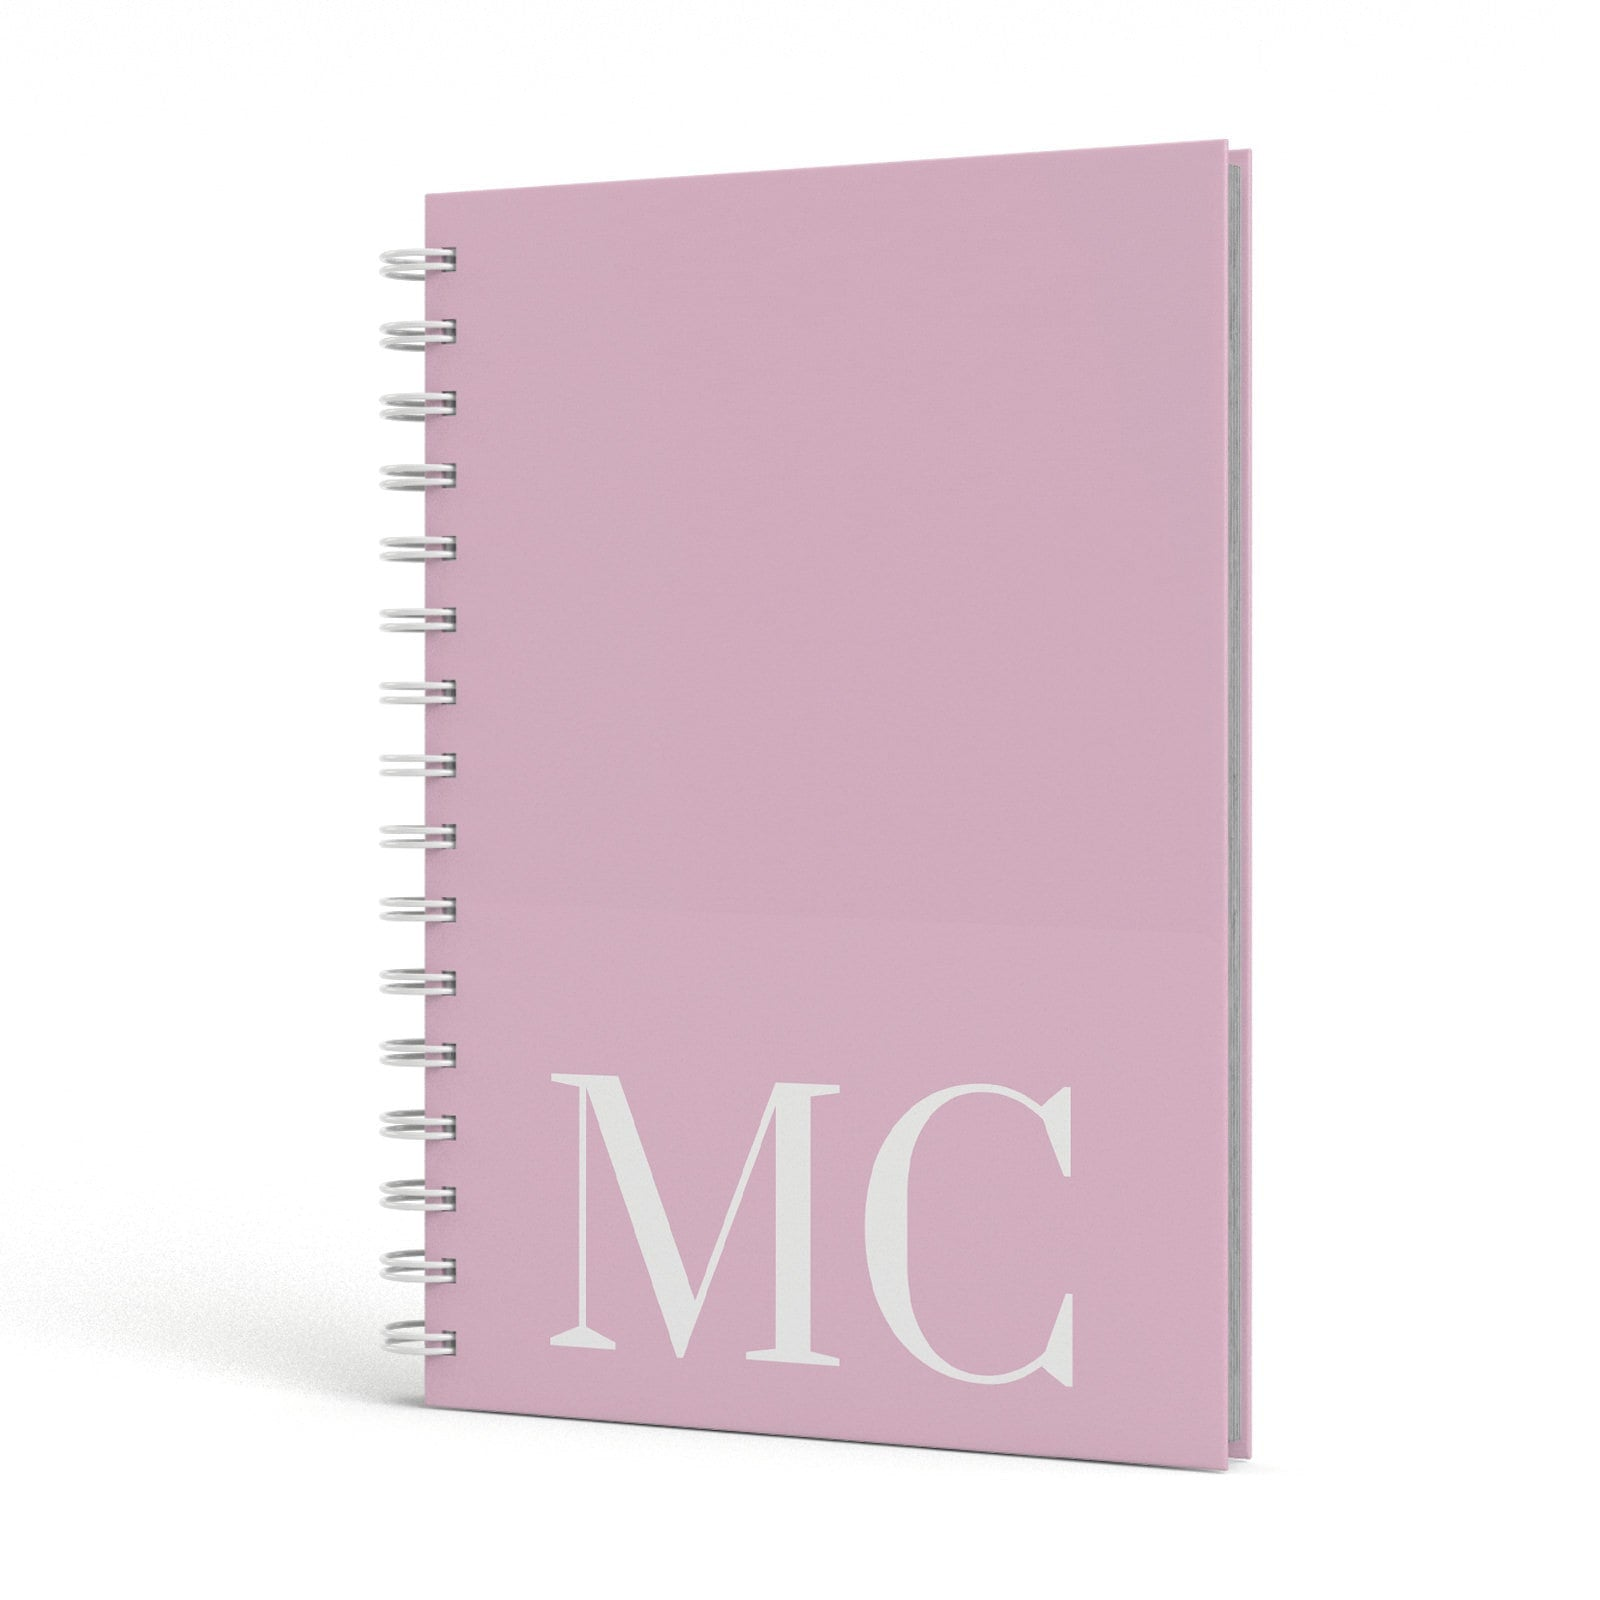 Initials Personalised 2 A5 Hardcover Notebook Side View